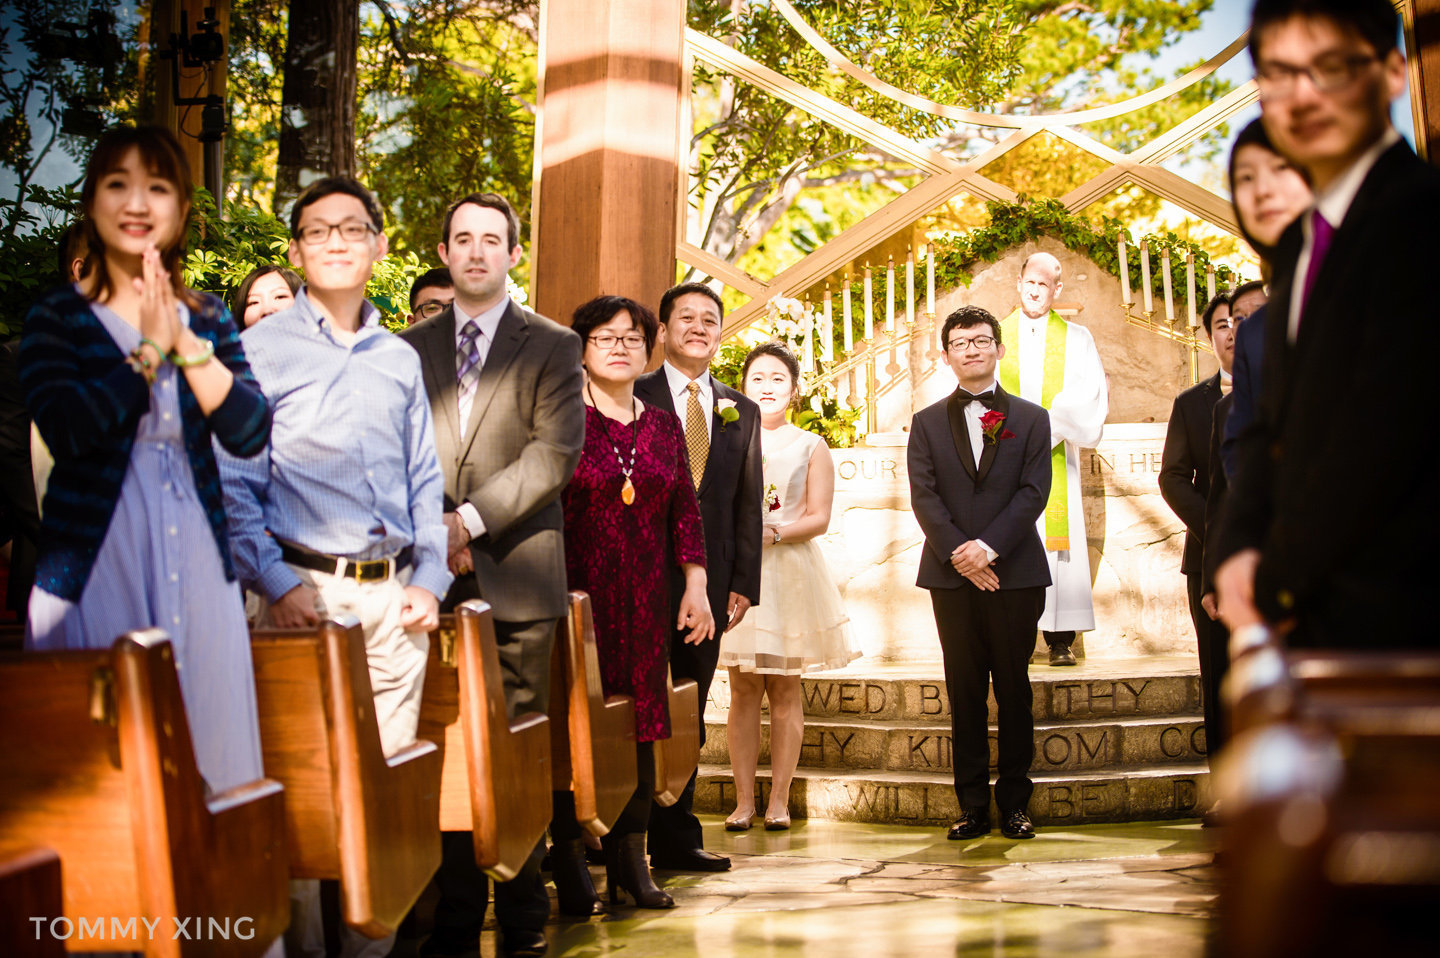 Los Angeles Wedding Photographer 洛杉矶婚礼婚纱摄影师 Tommy Xing-118.JPG